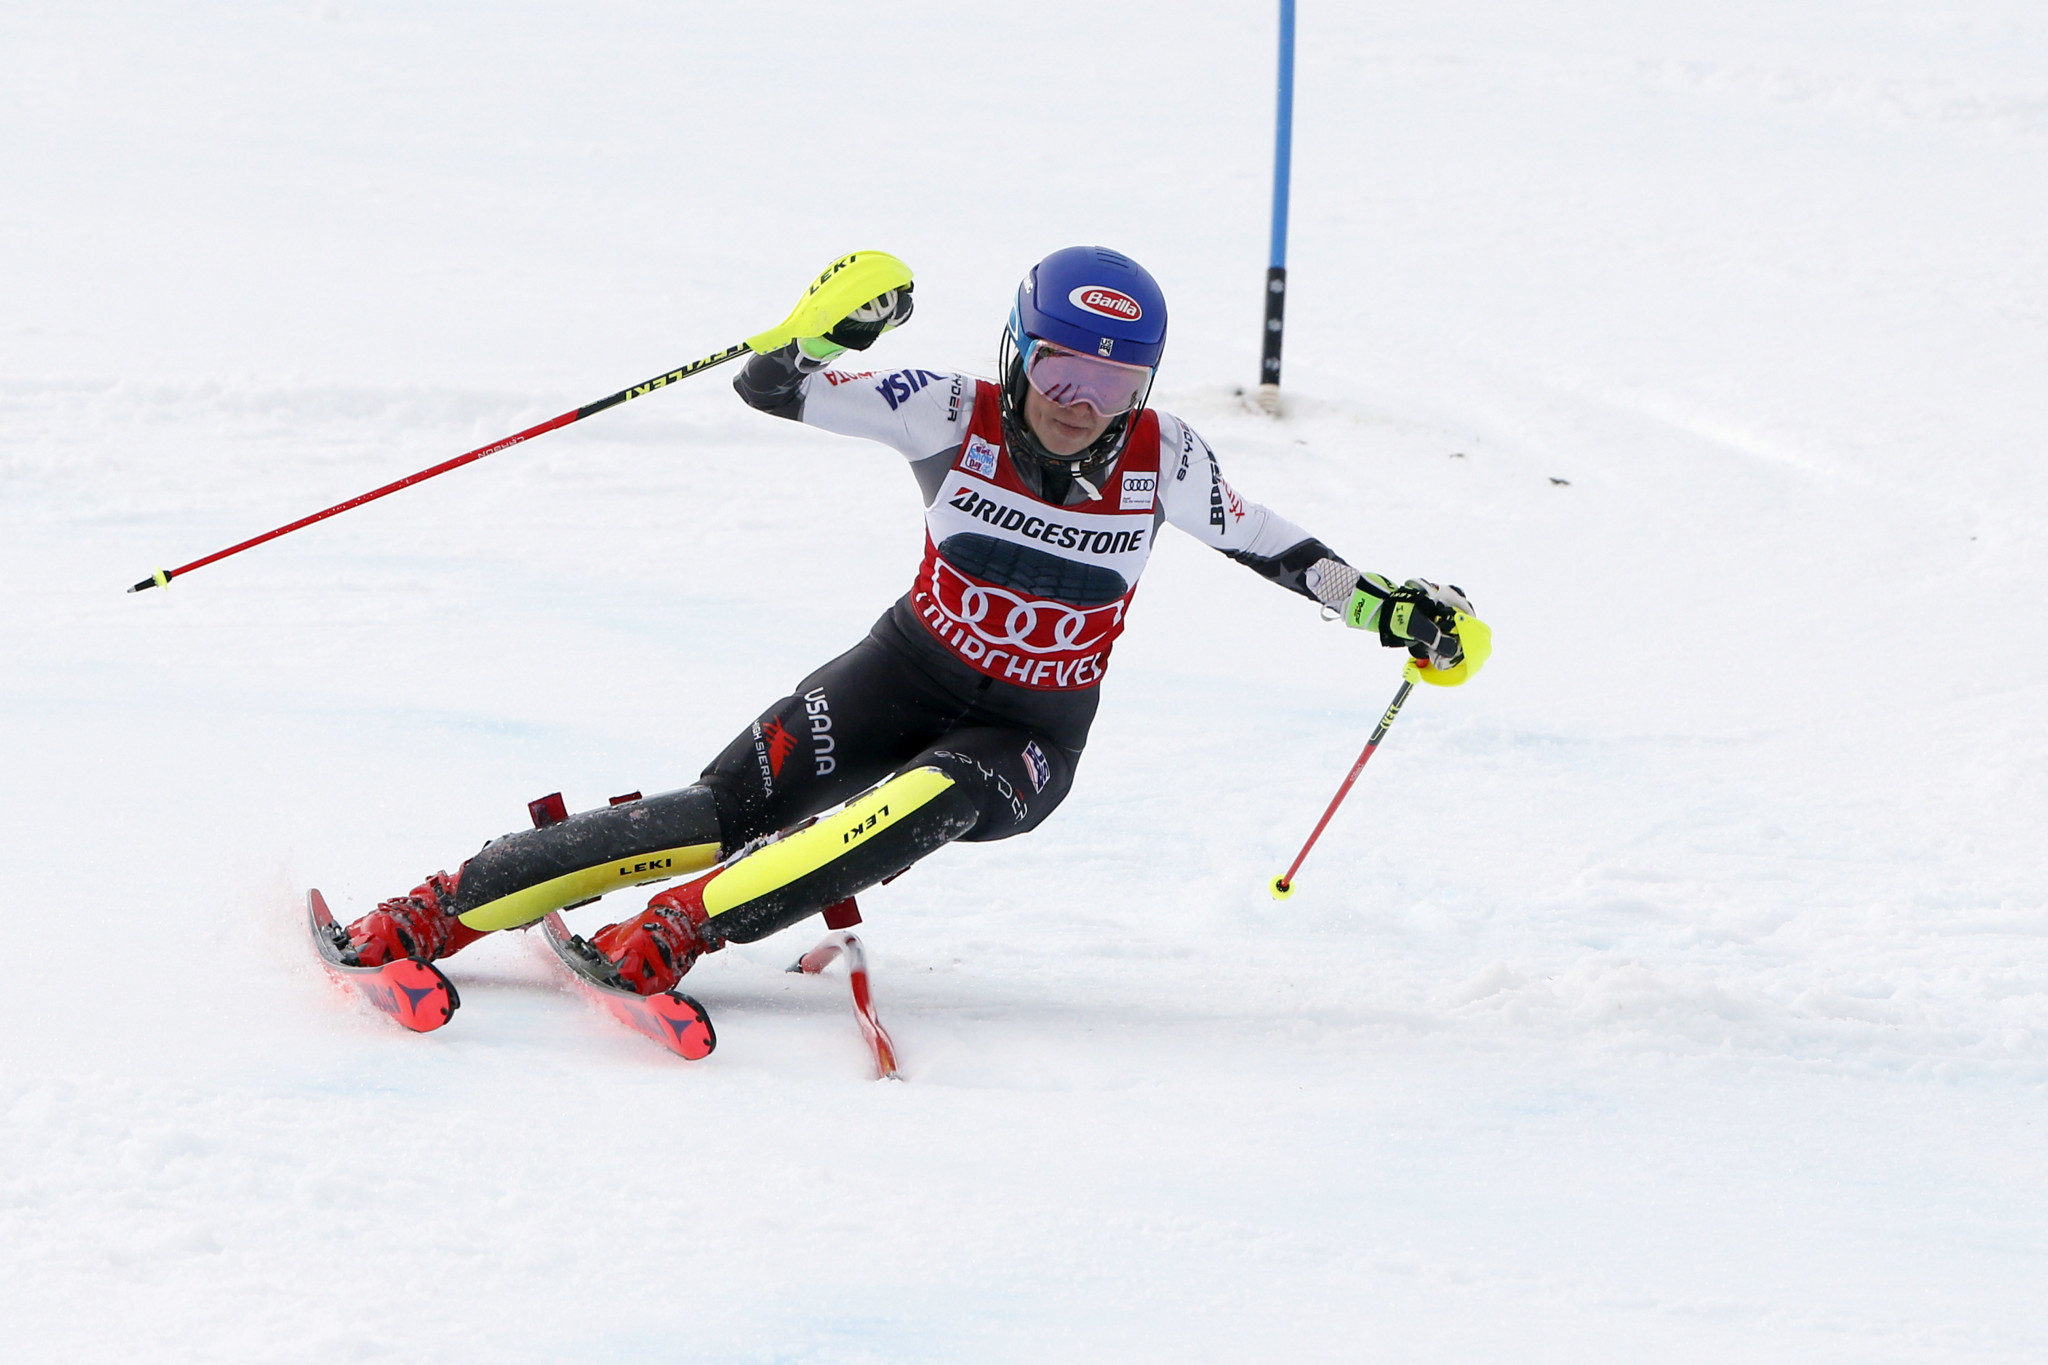 Mikaela Shiffrin will look to continue her unbeatable form in Semmering ©Getty Images